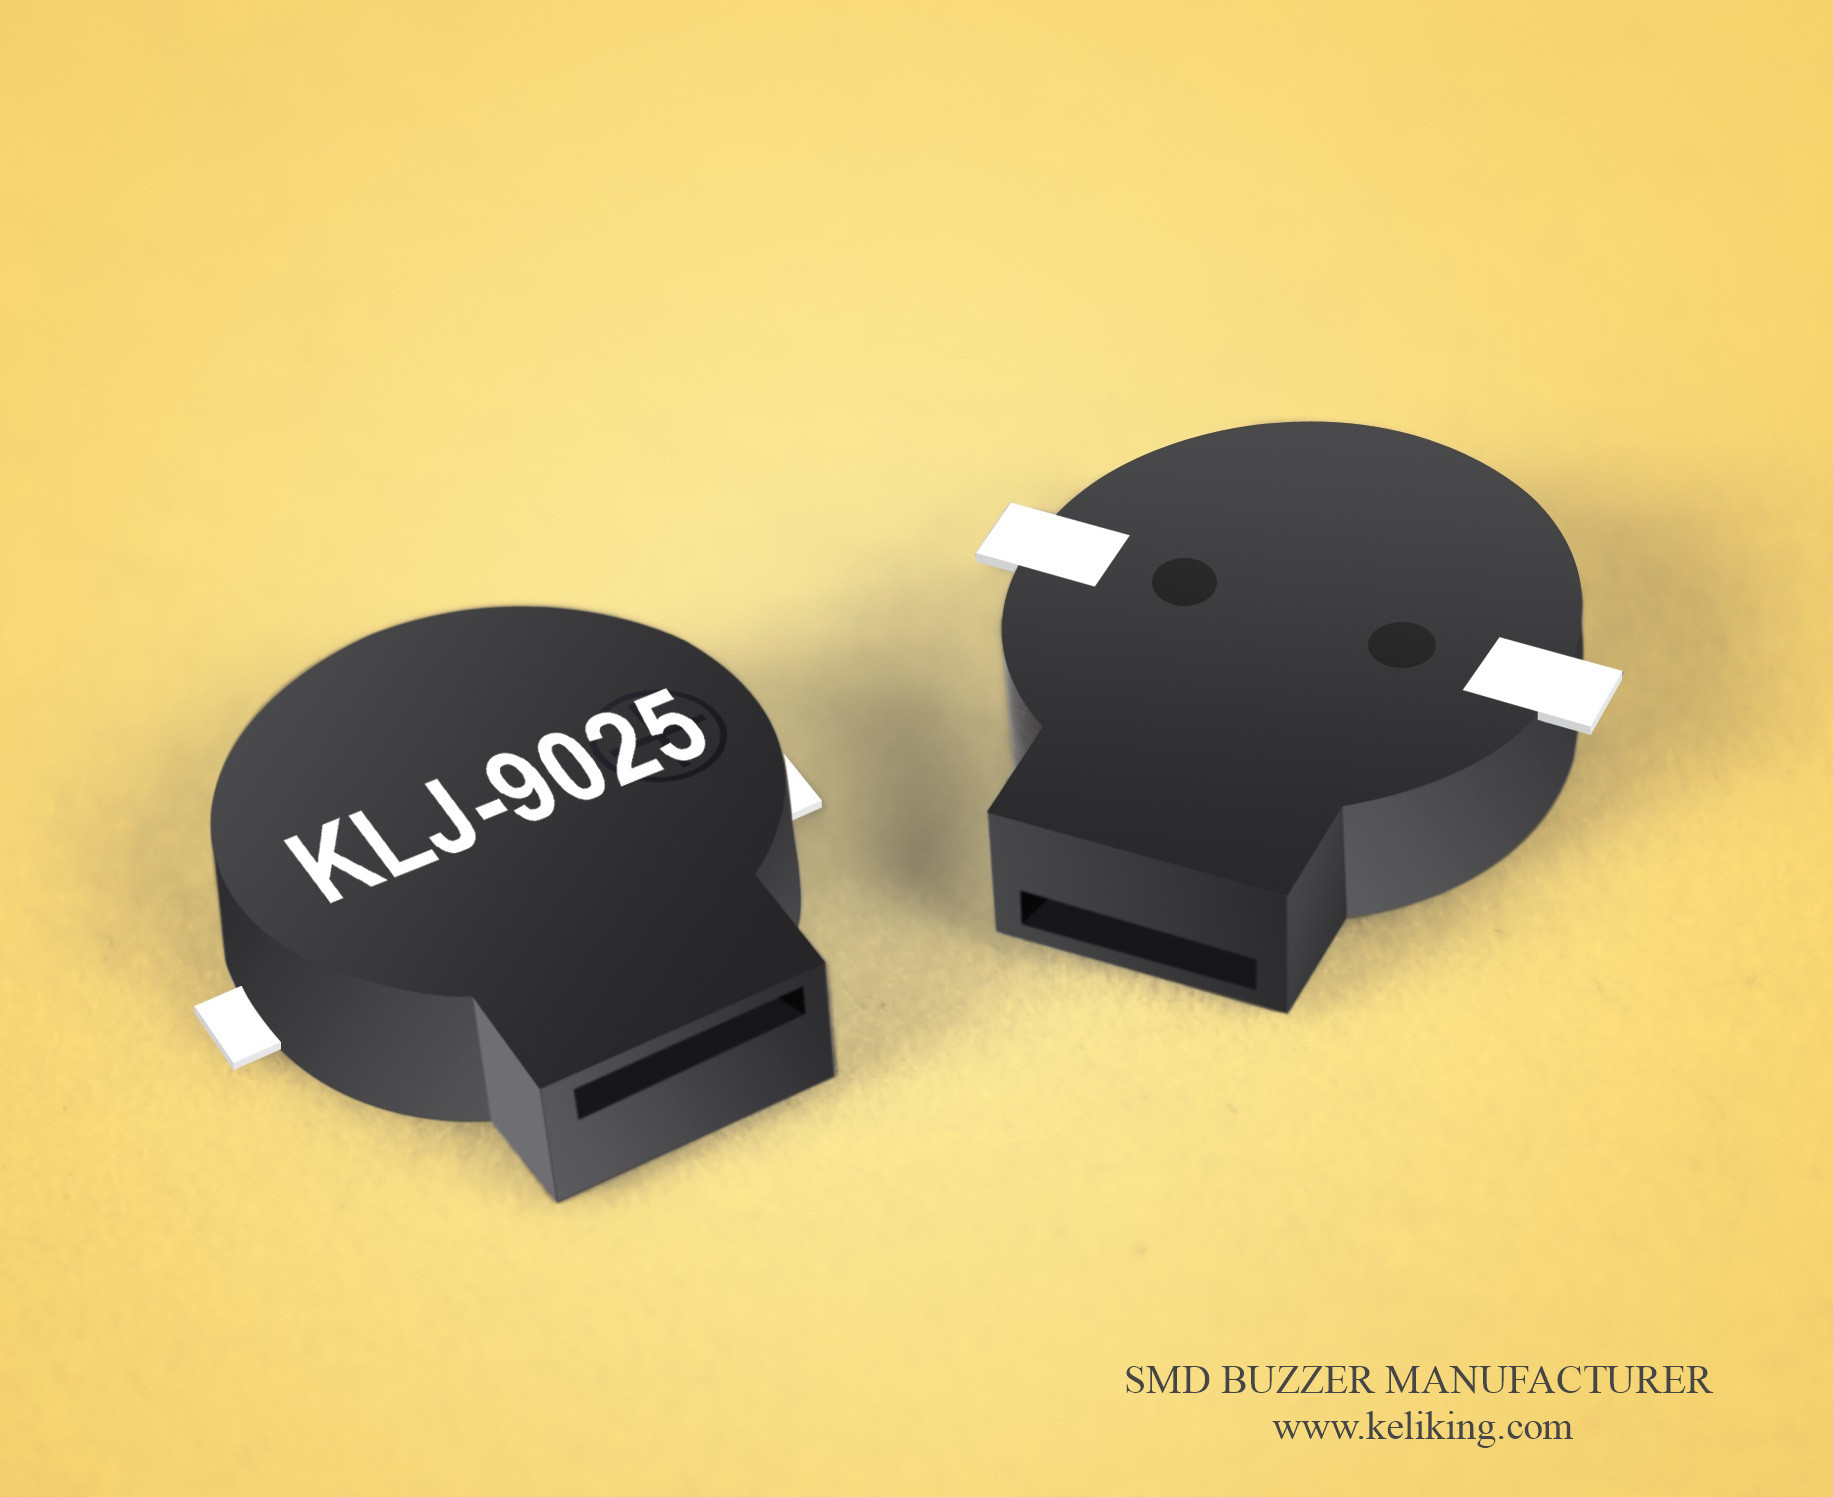 SMD Buzzer Magnetic Surface Mounted Buzzer, KLJ-9025-3627